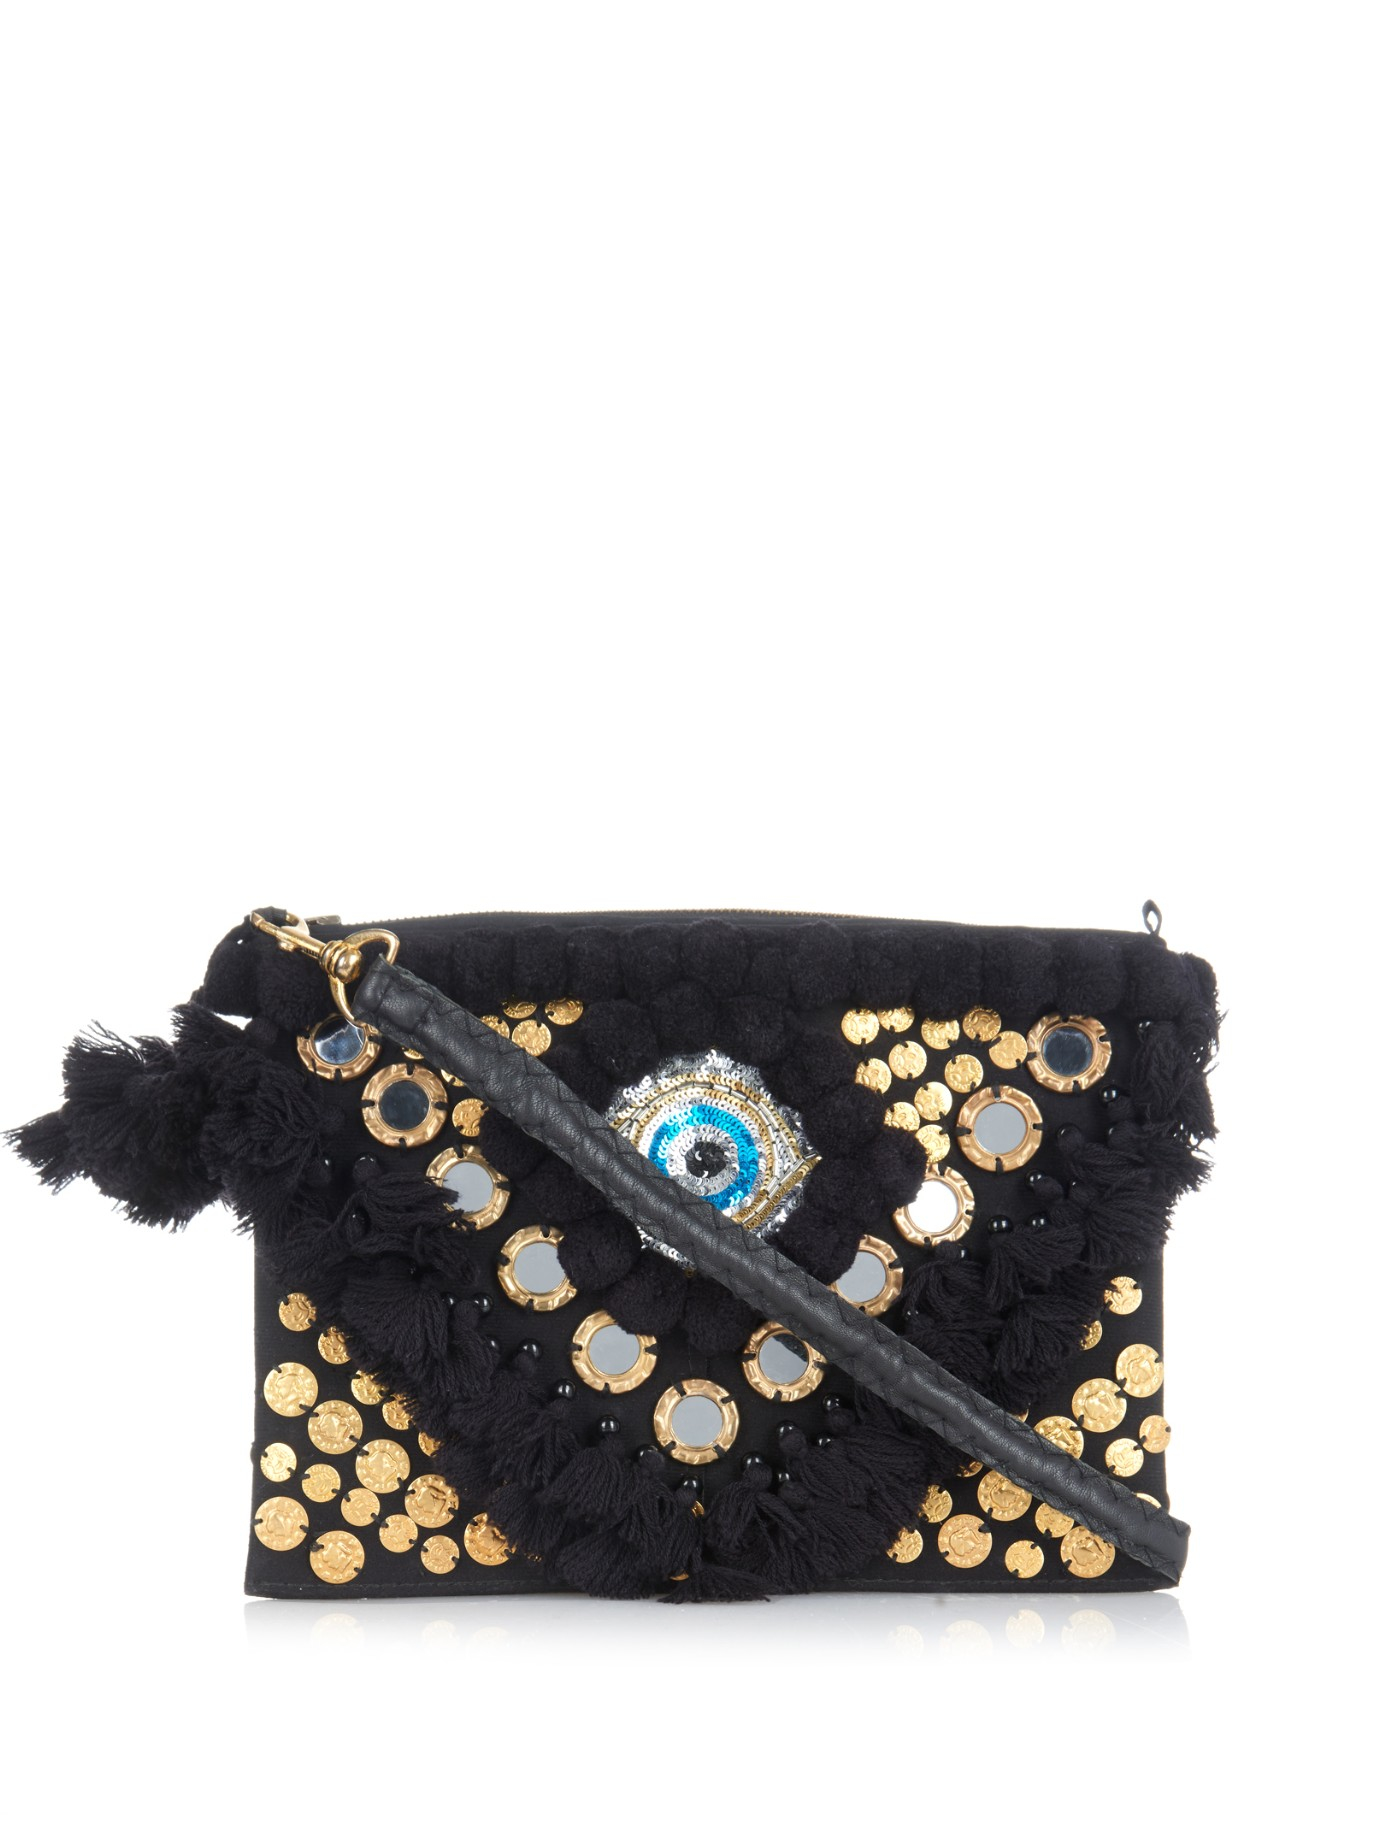 Figue Evil Eye Embroidered Cross-body Bag in Black | Lyst